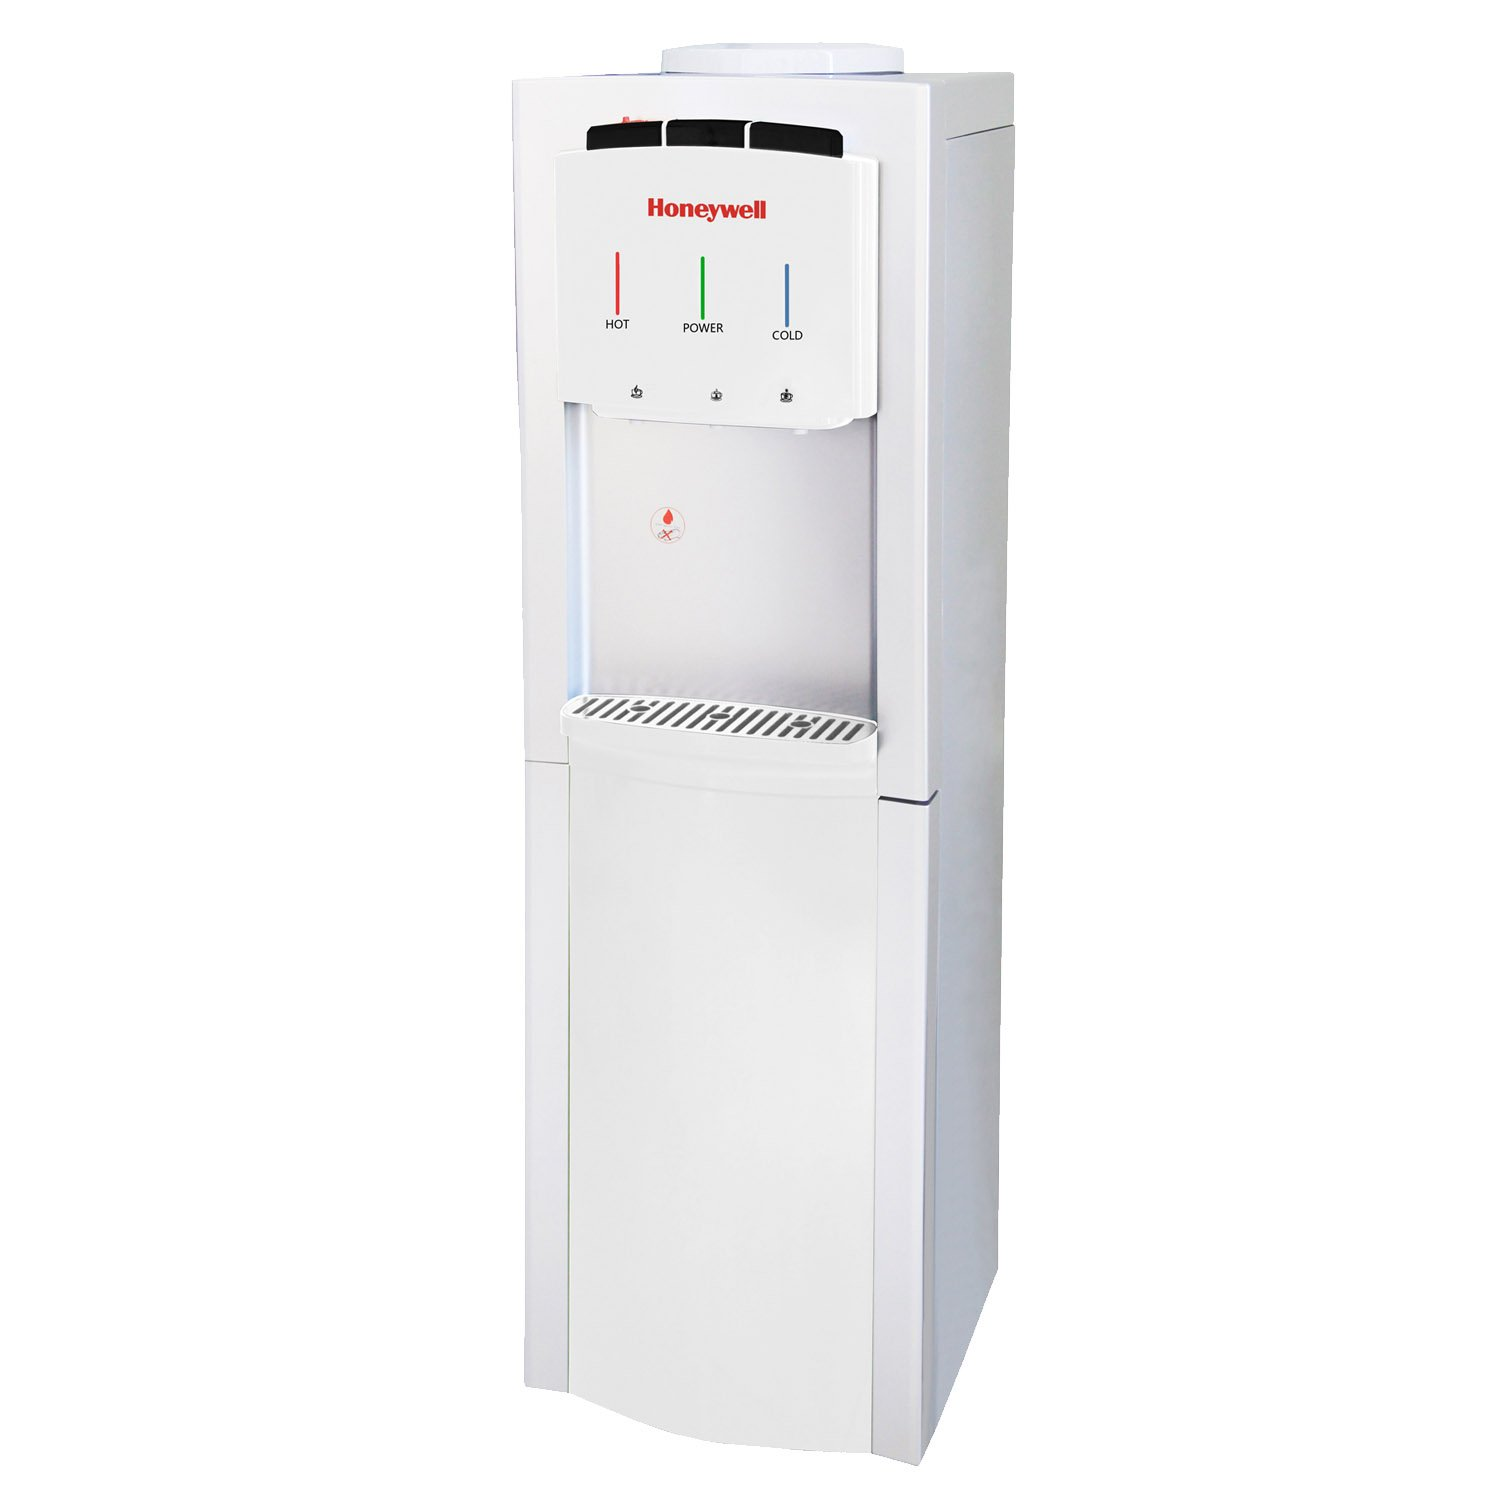 Honeywell HWB1033W Cabinet Freestanding Hot, Cold & Room Water Dispenser with Stainless Steel Tank to help improve water taste and avoid corrosion, White